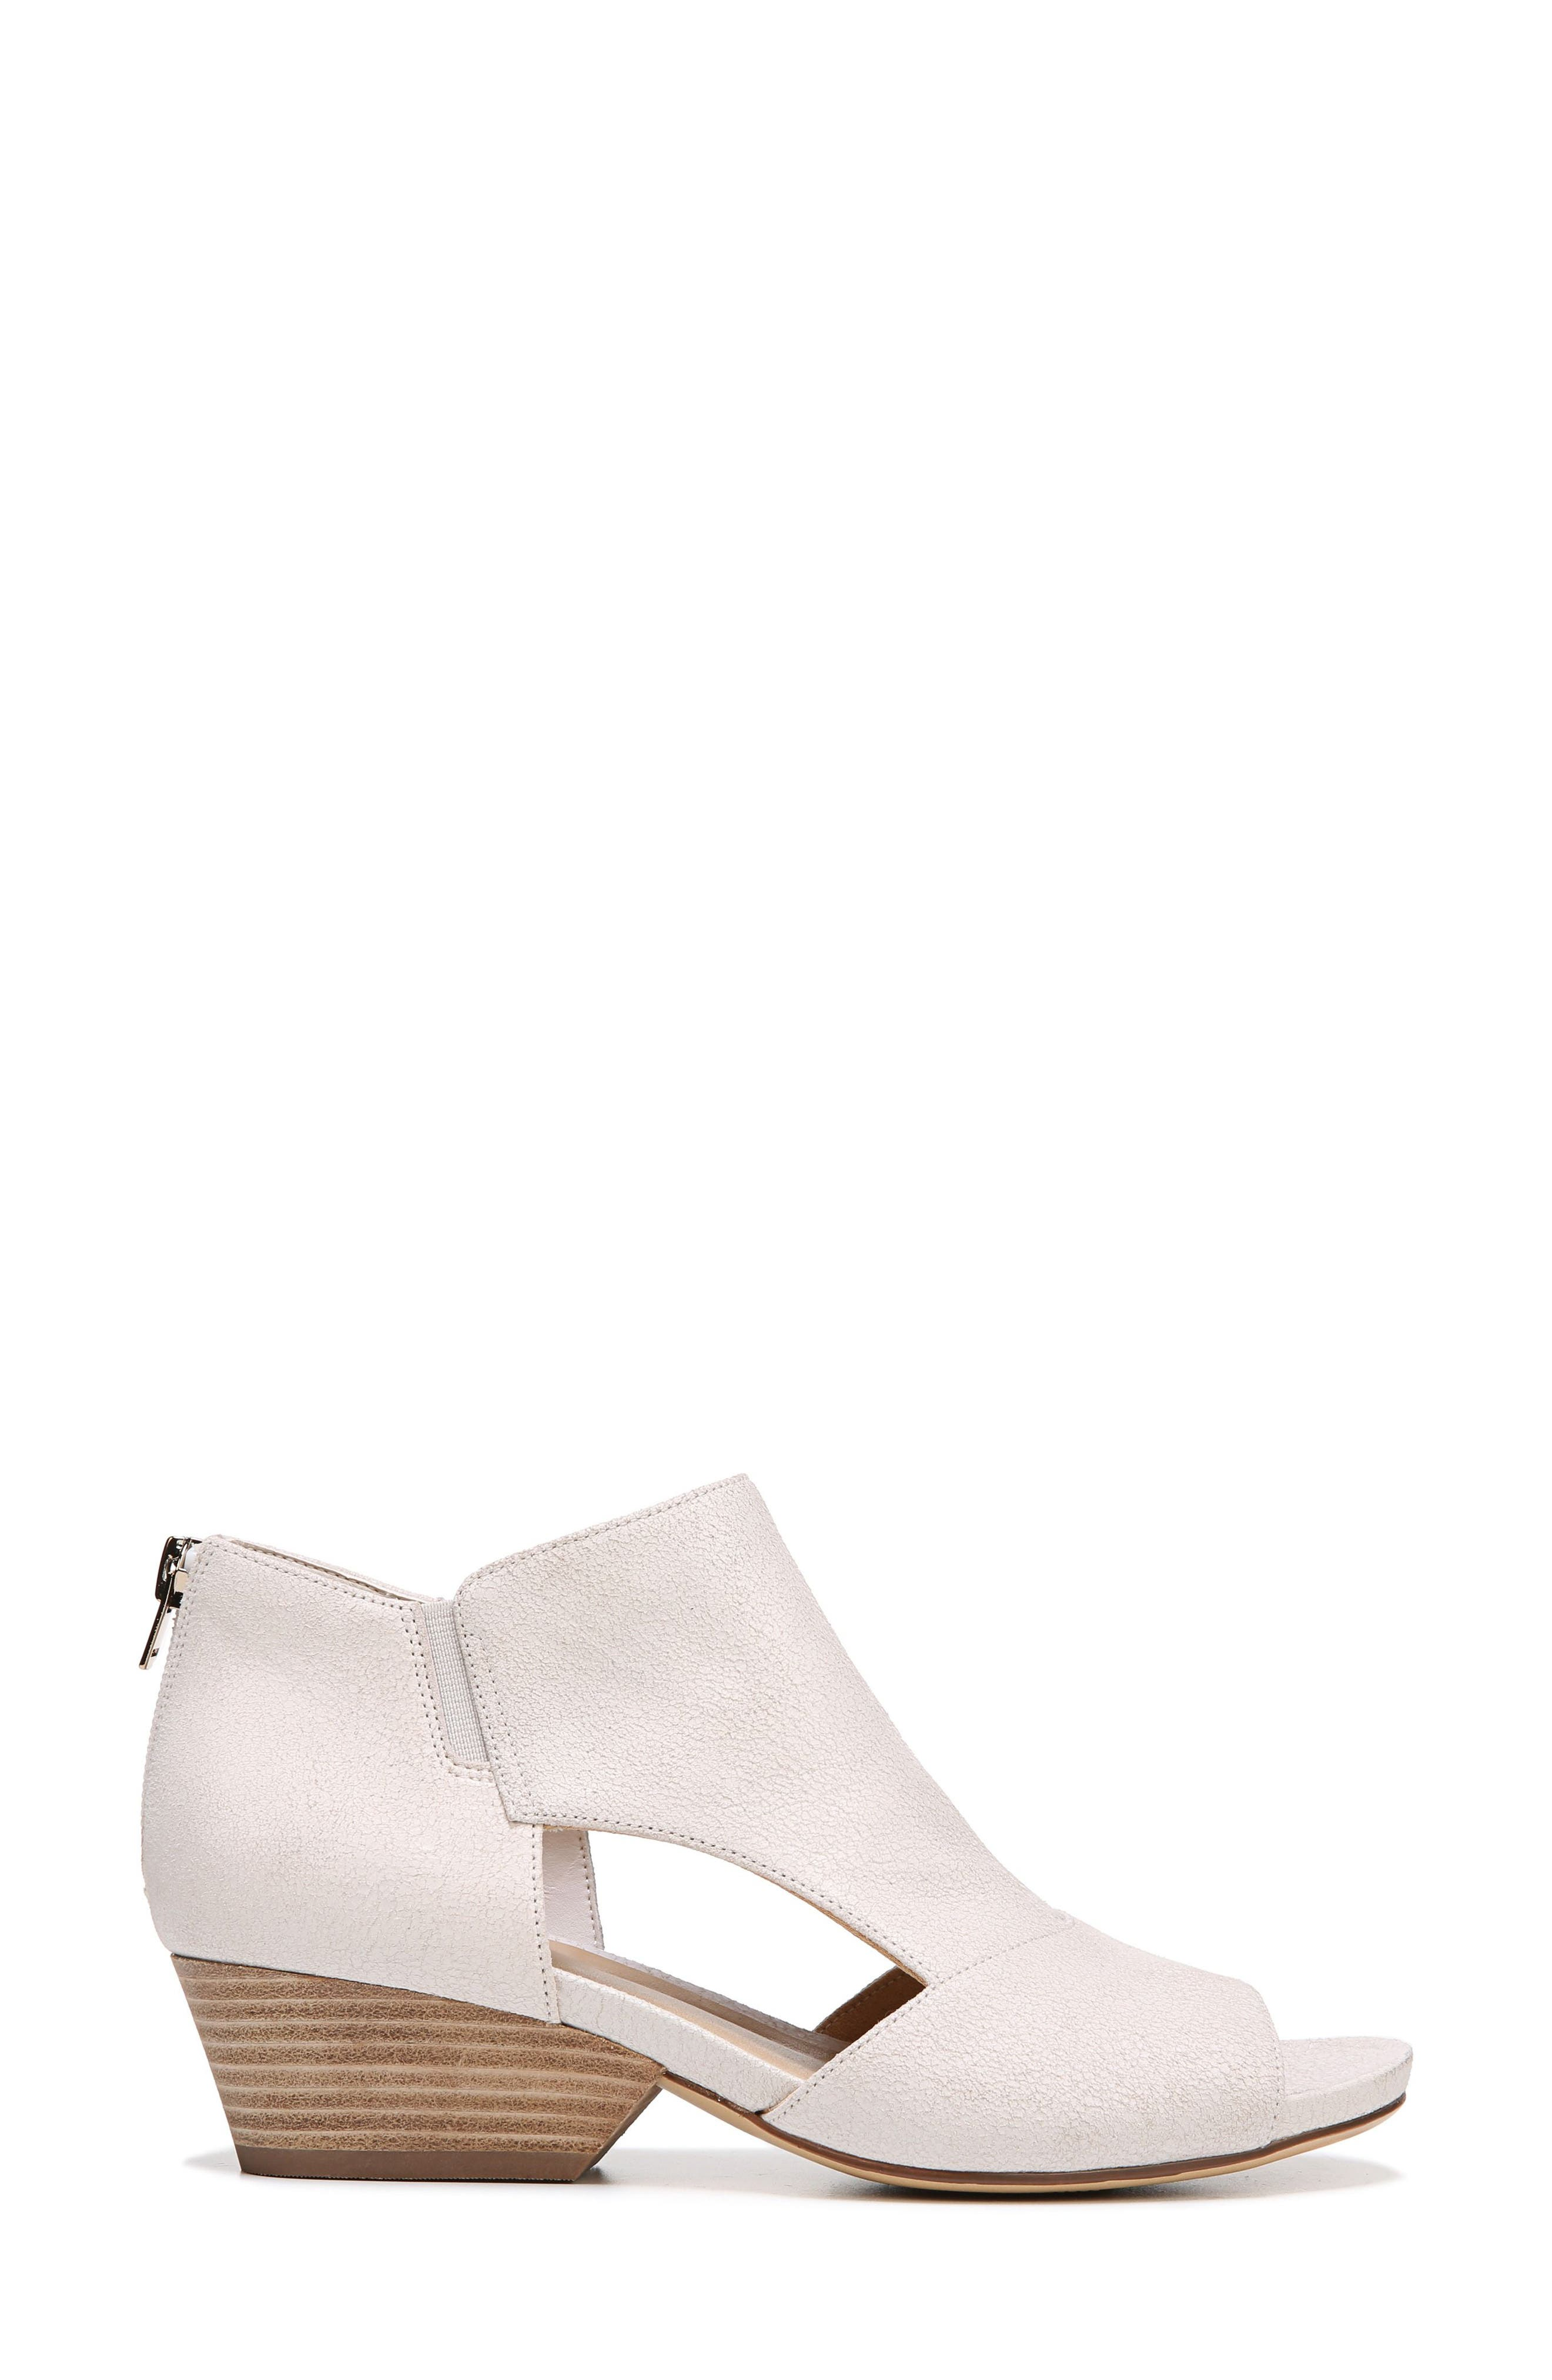 Alternate Image 3  - Naturalizer Greyson Open Toe Bootie (Women)